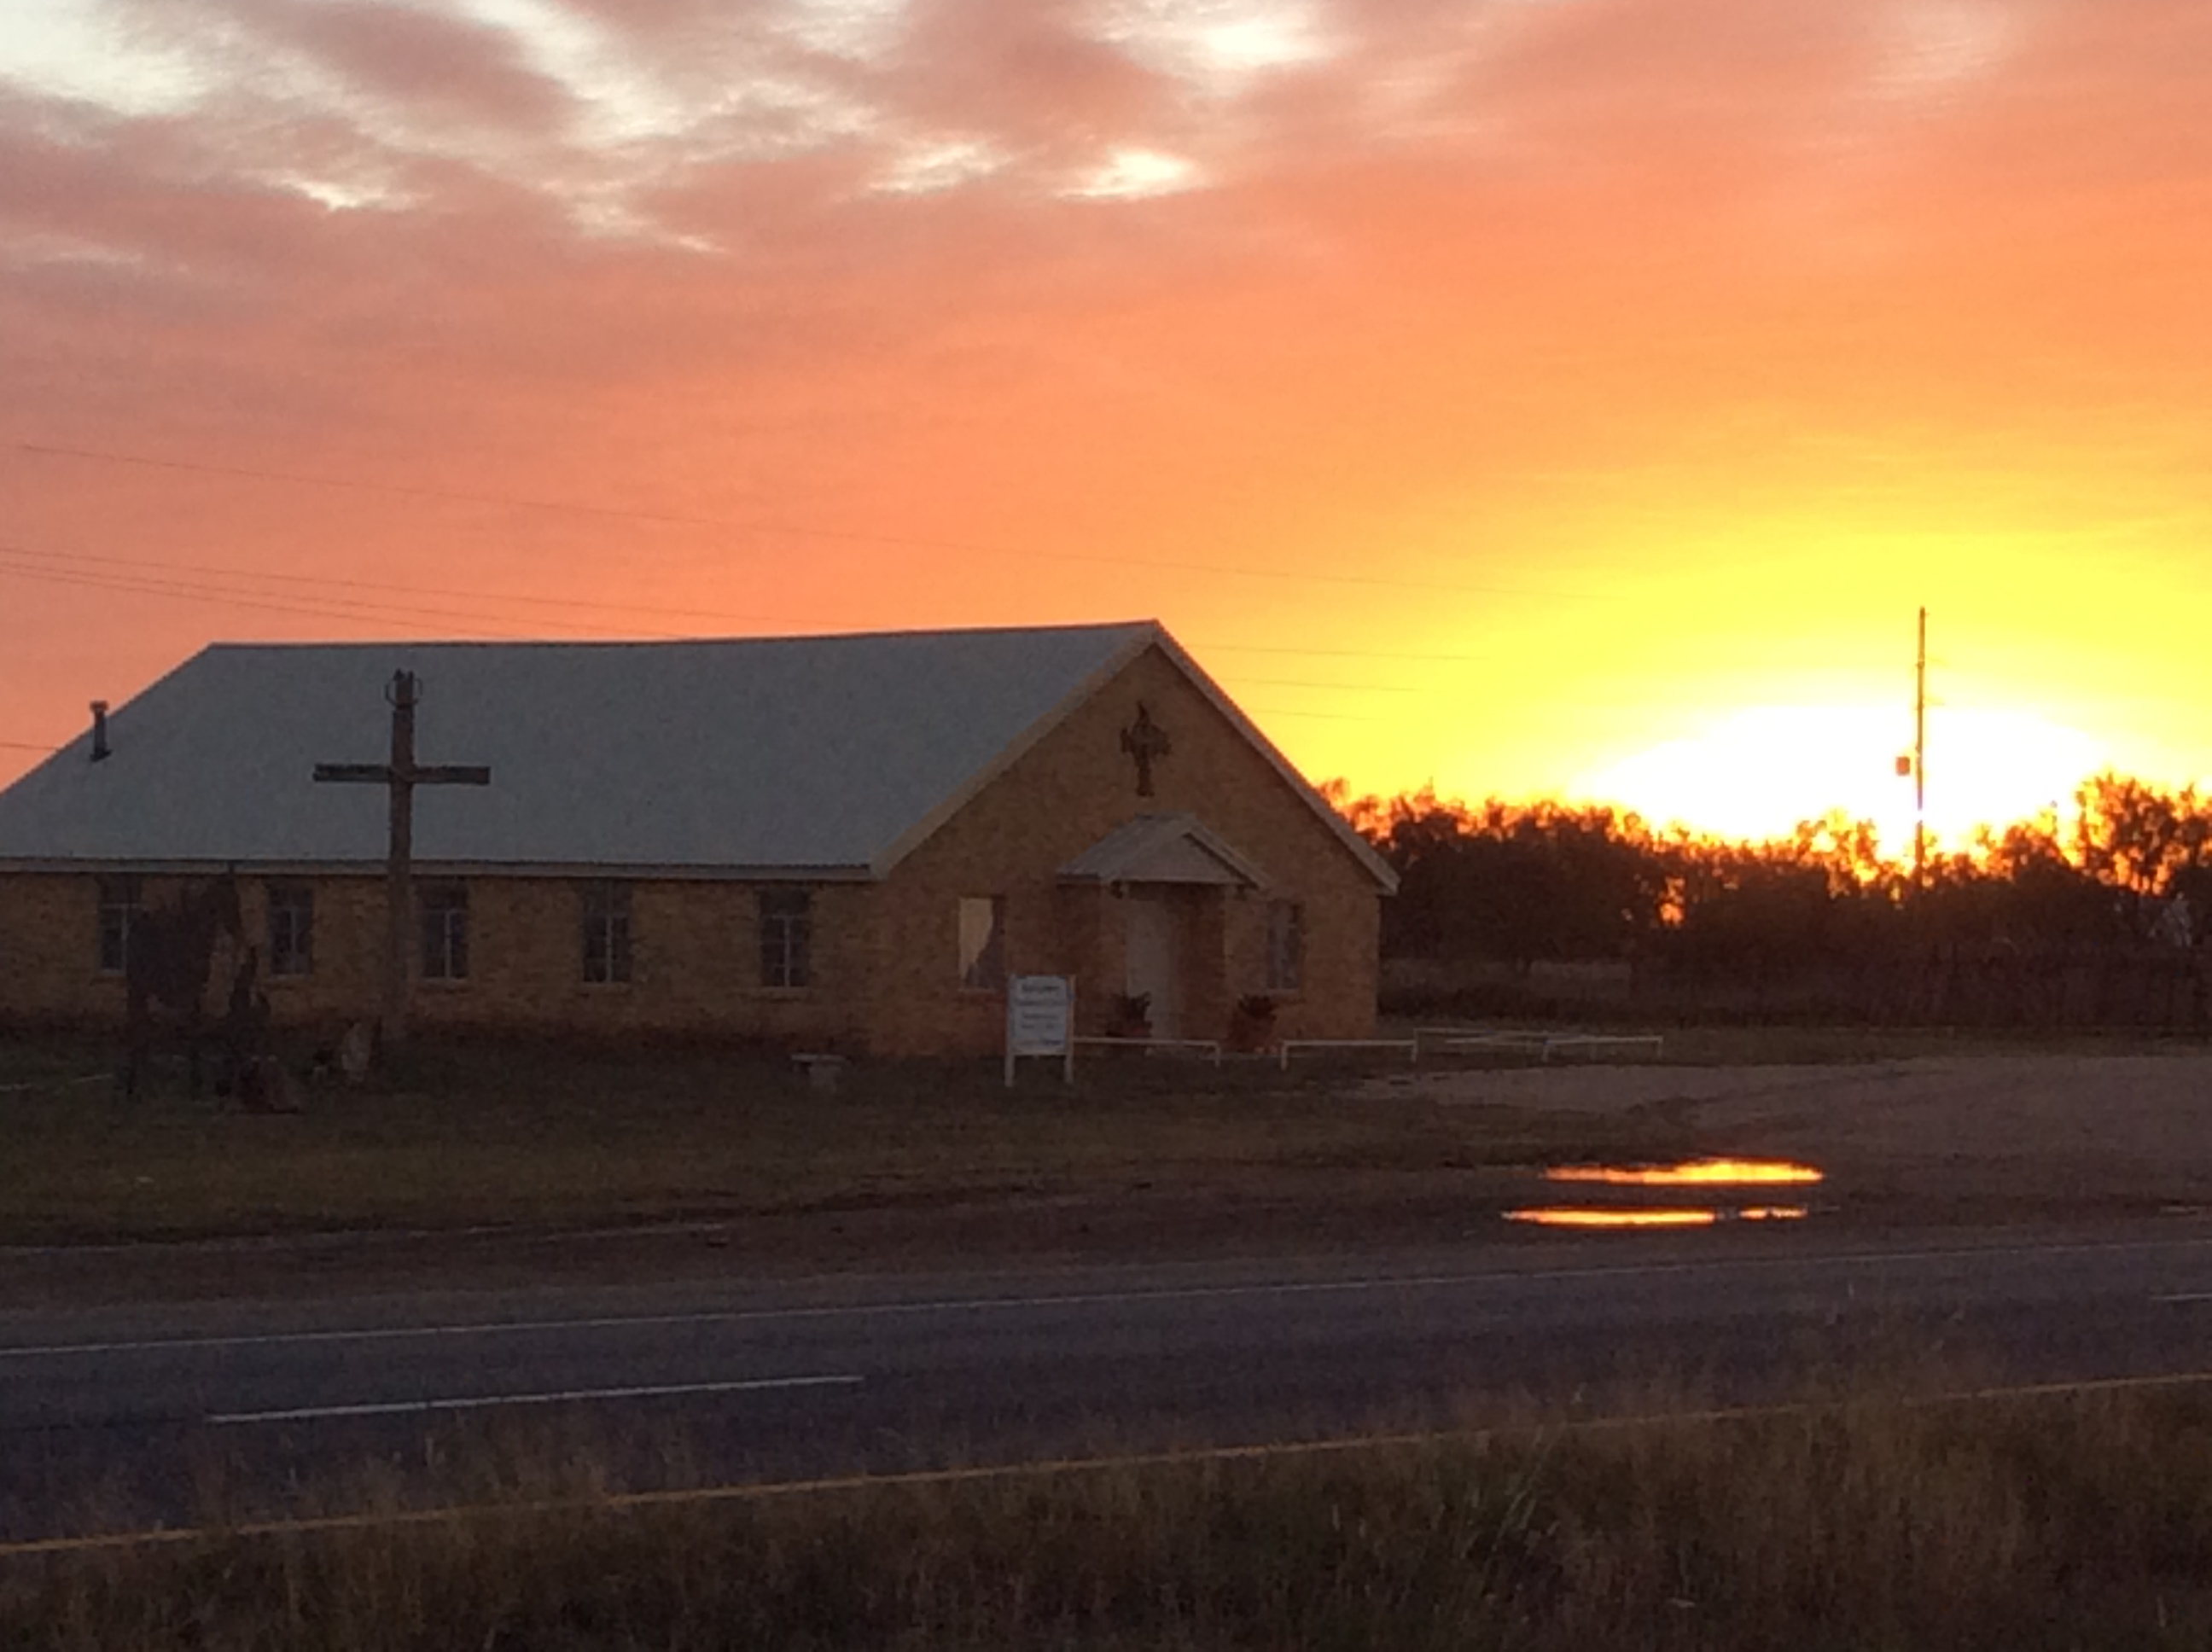 Sunrise at Justiceburg Community Church on 11-08-2014.